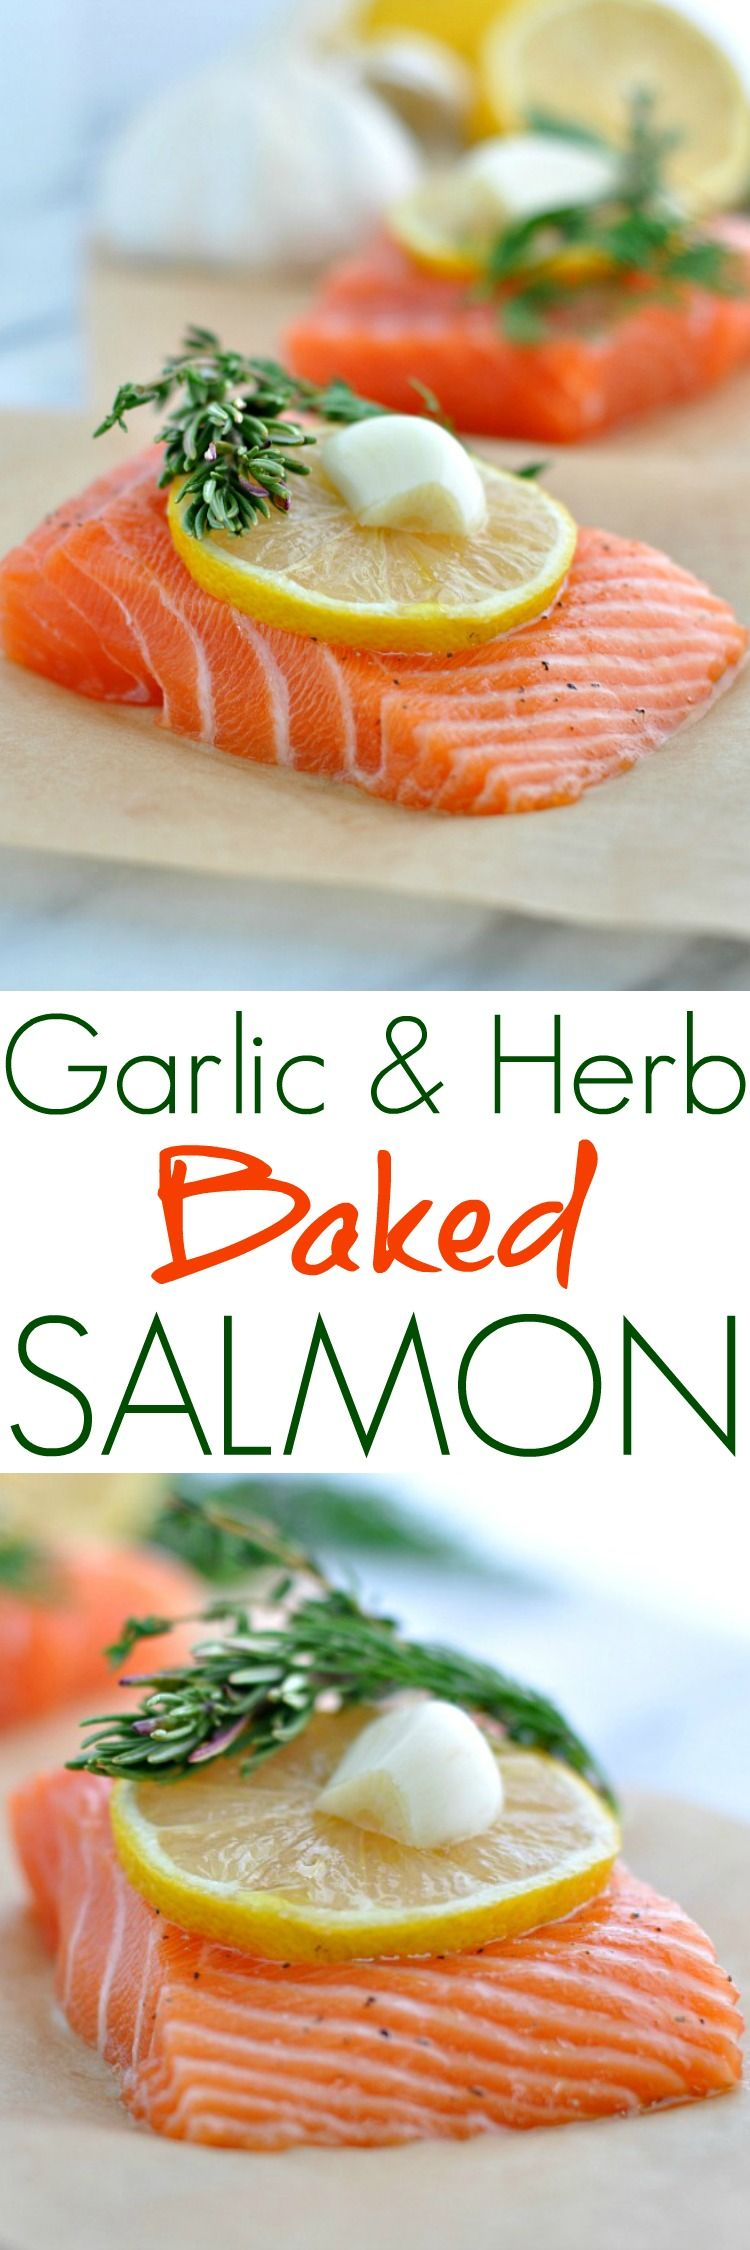 This simple and fresh Garlic and Herb Baked Salmon cooks in foil or parchment packets for an easy and healthy weeknight dinner -- and very little clean-up!